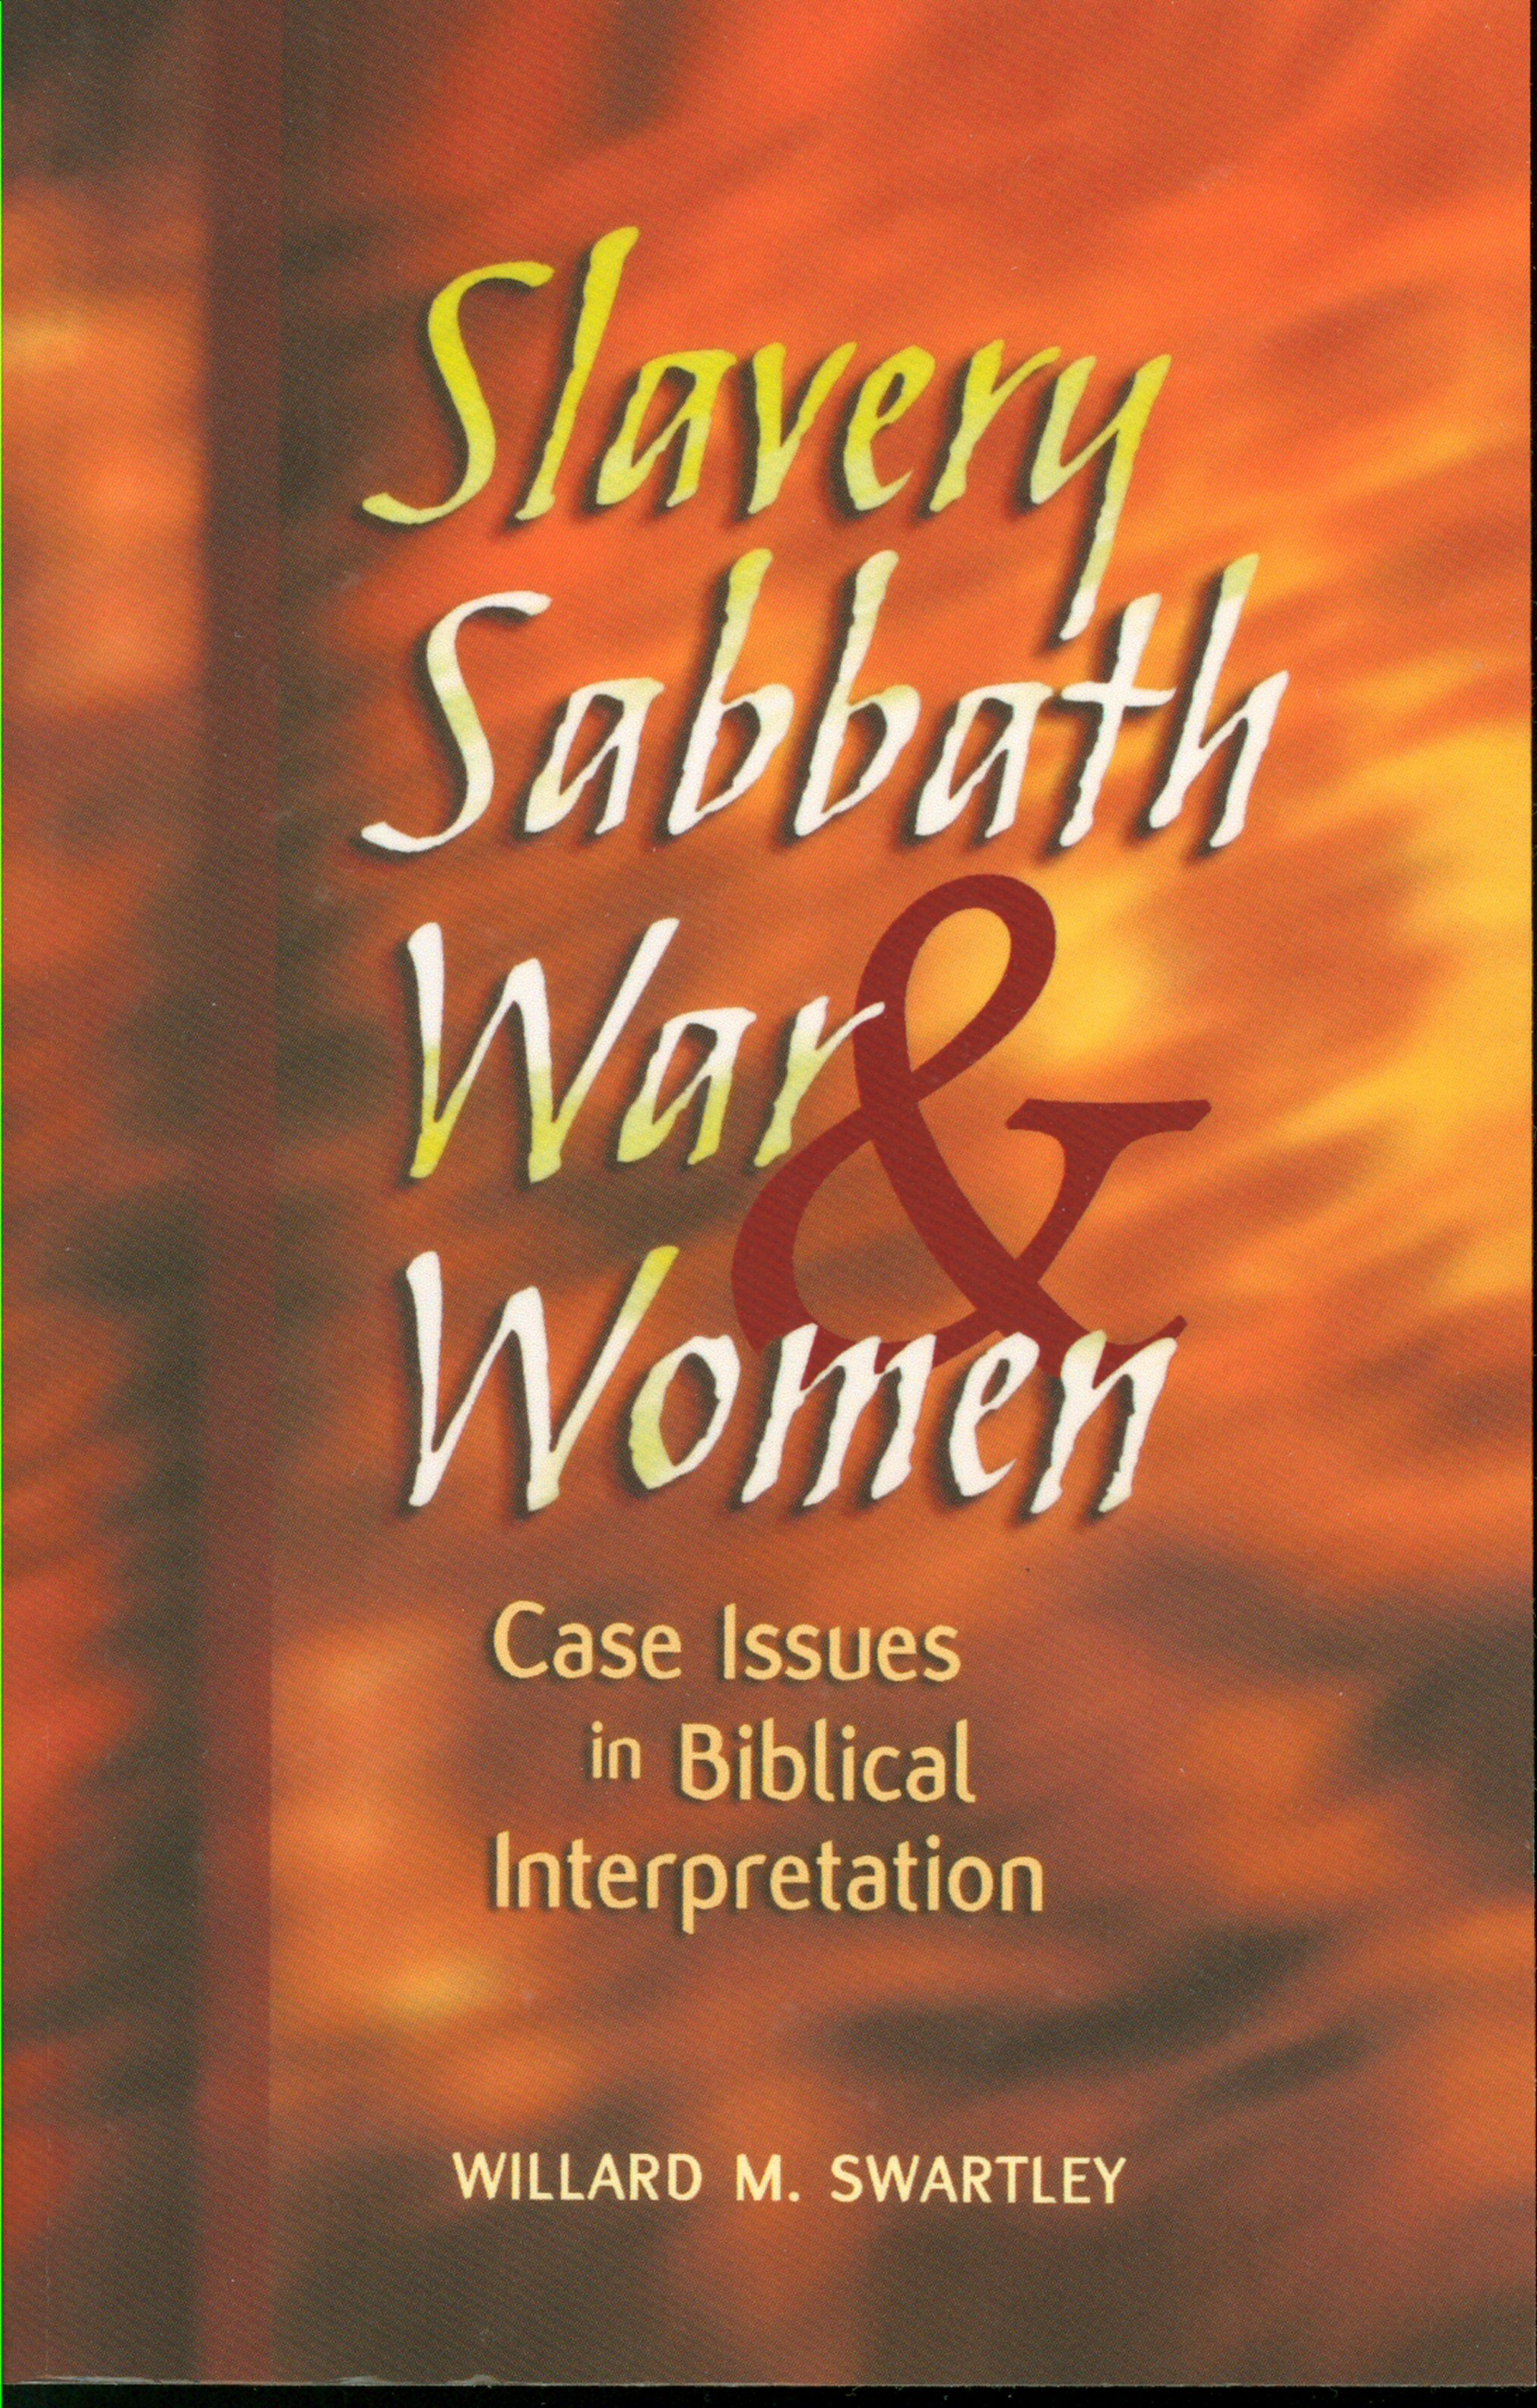 Slavery, Sabbath, War, and Women: Case Issues in Biblical Interpretation